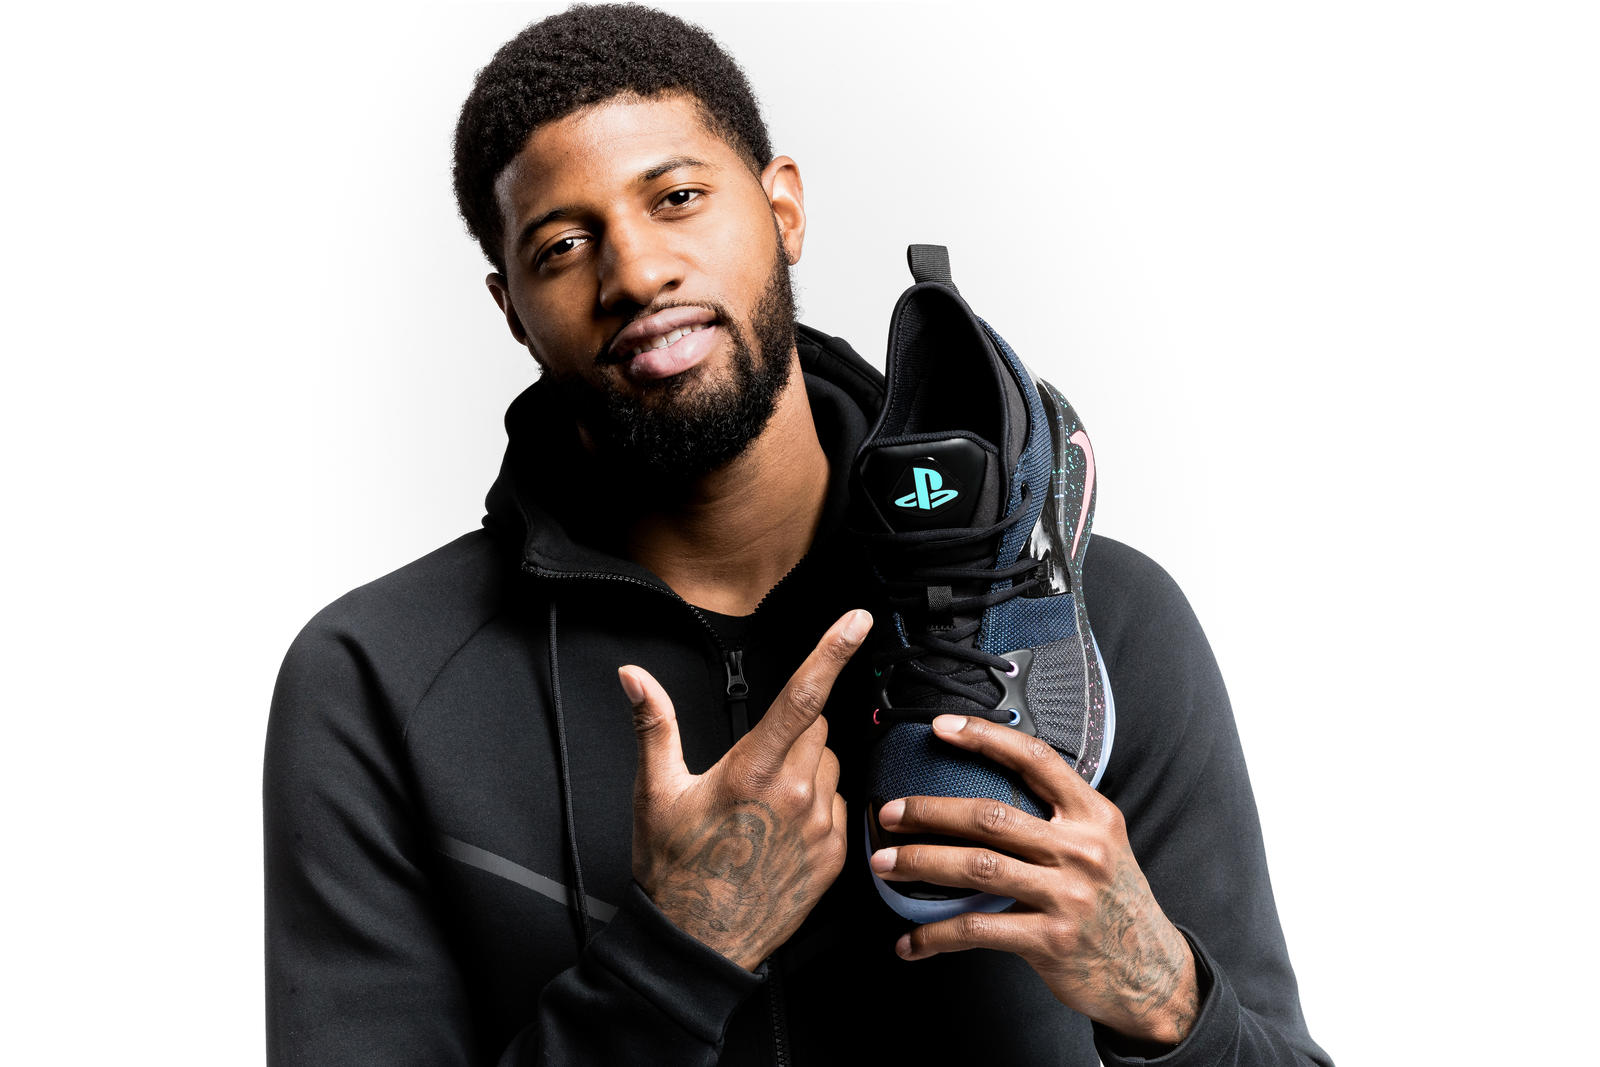 Introducing Paul George's Second Signature Shoe, the PG2 3